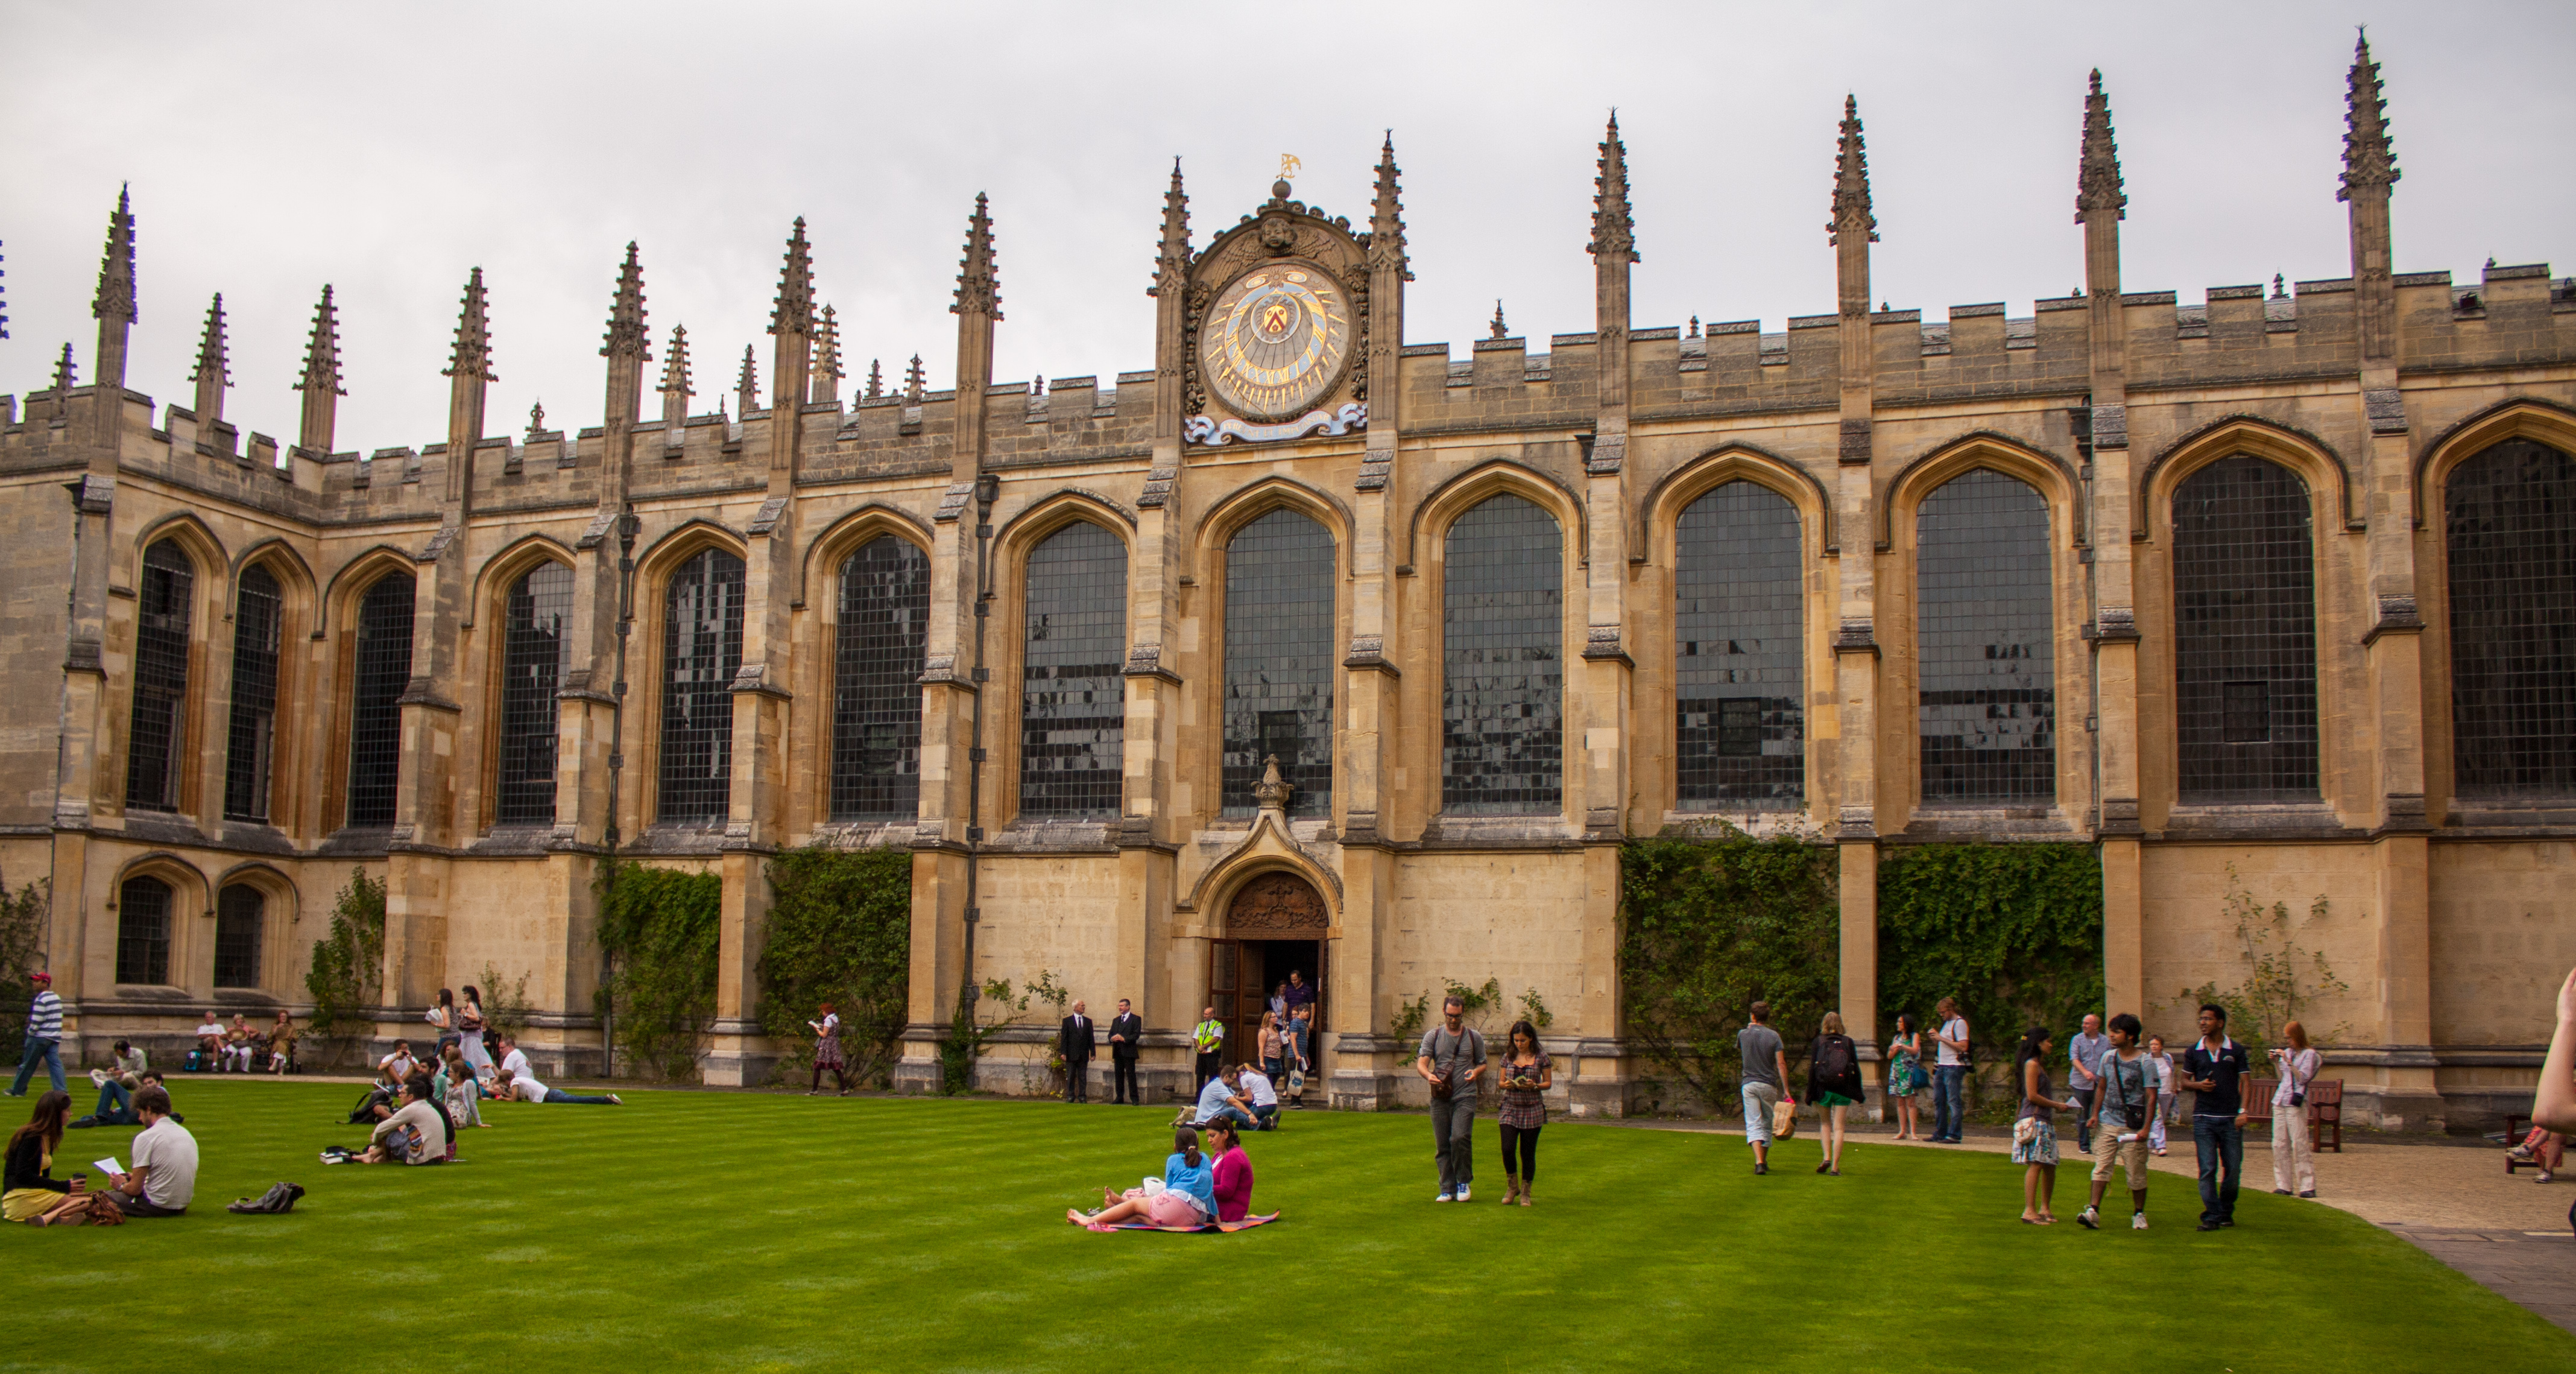 1644_The_Codrington_Library,_All_Souls_College,_Oxford_5.jpg